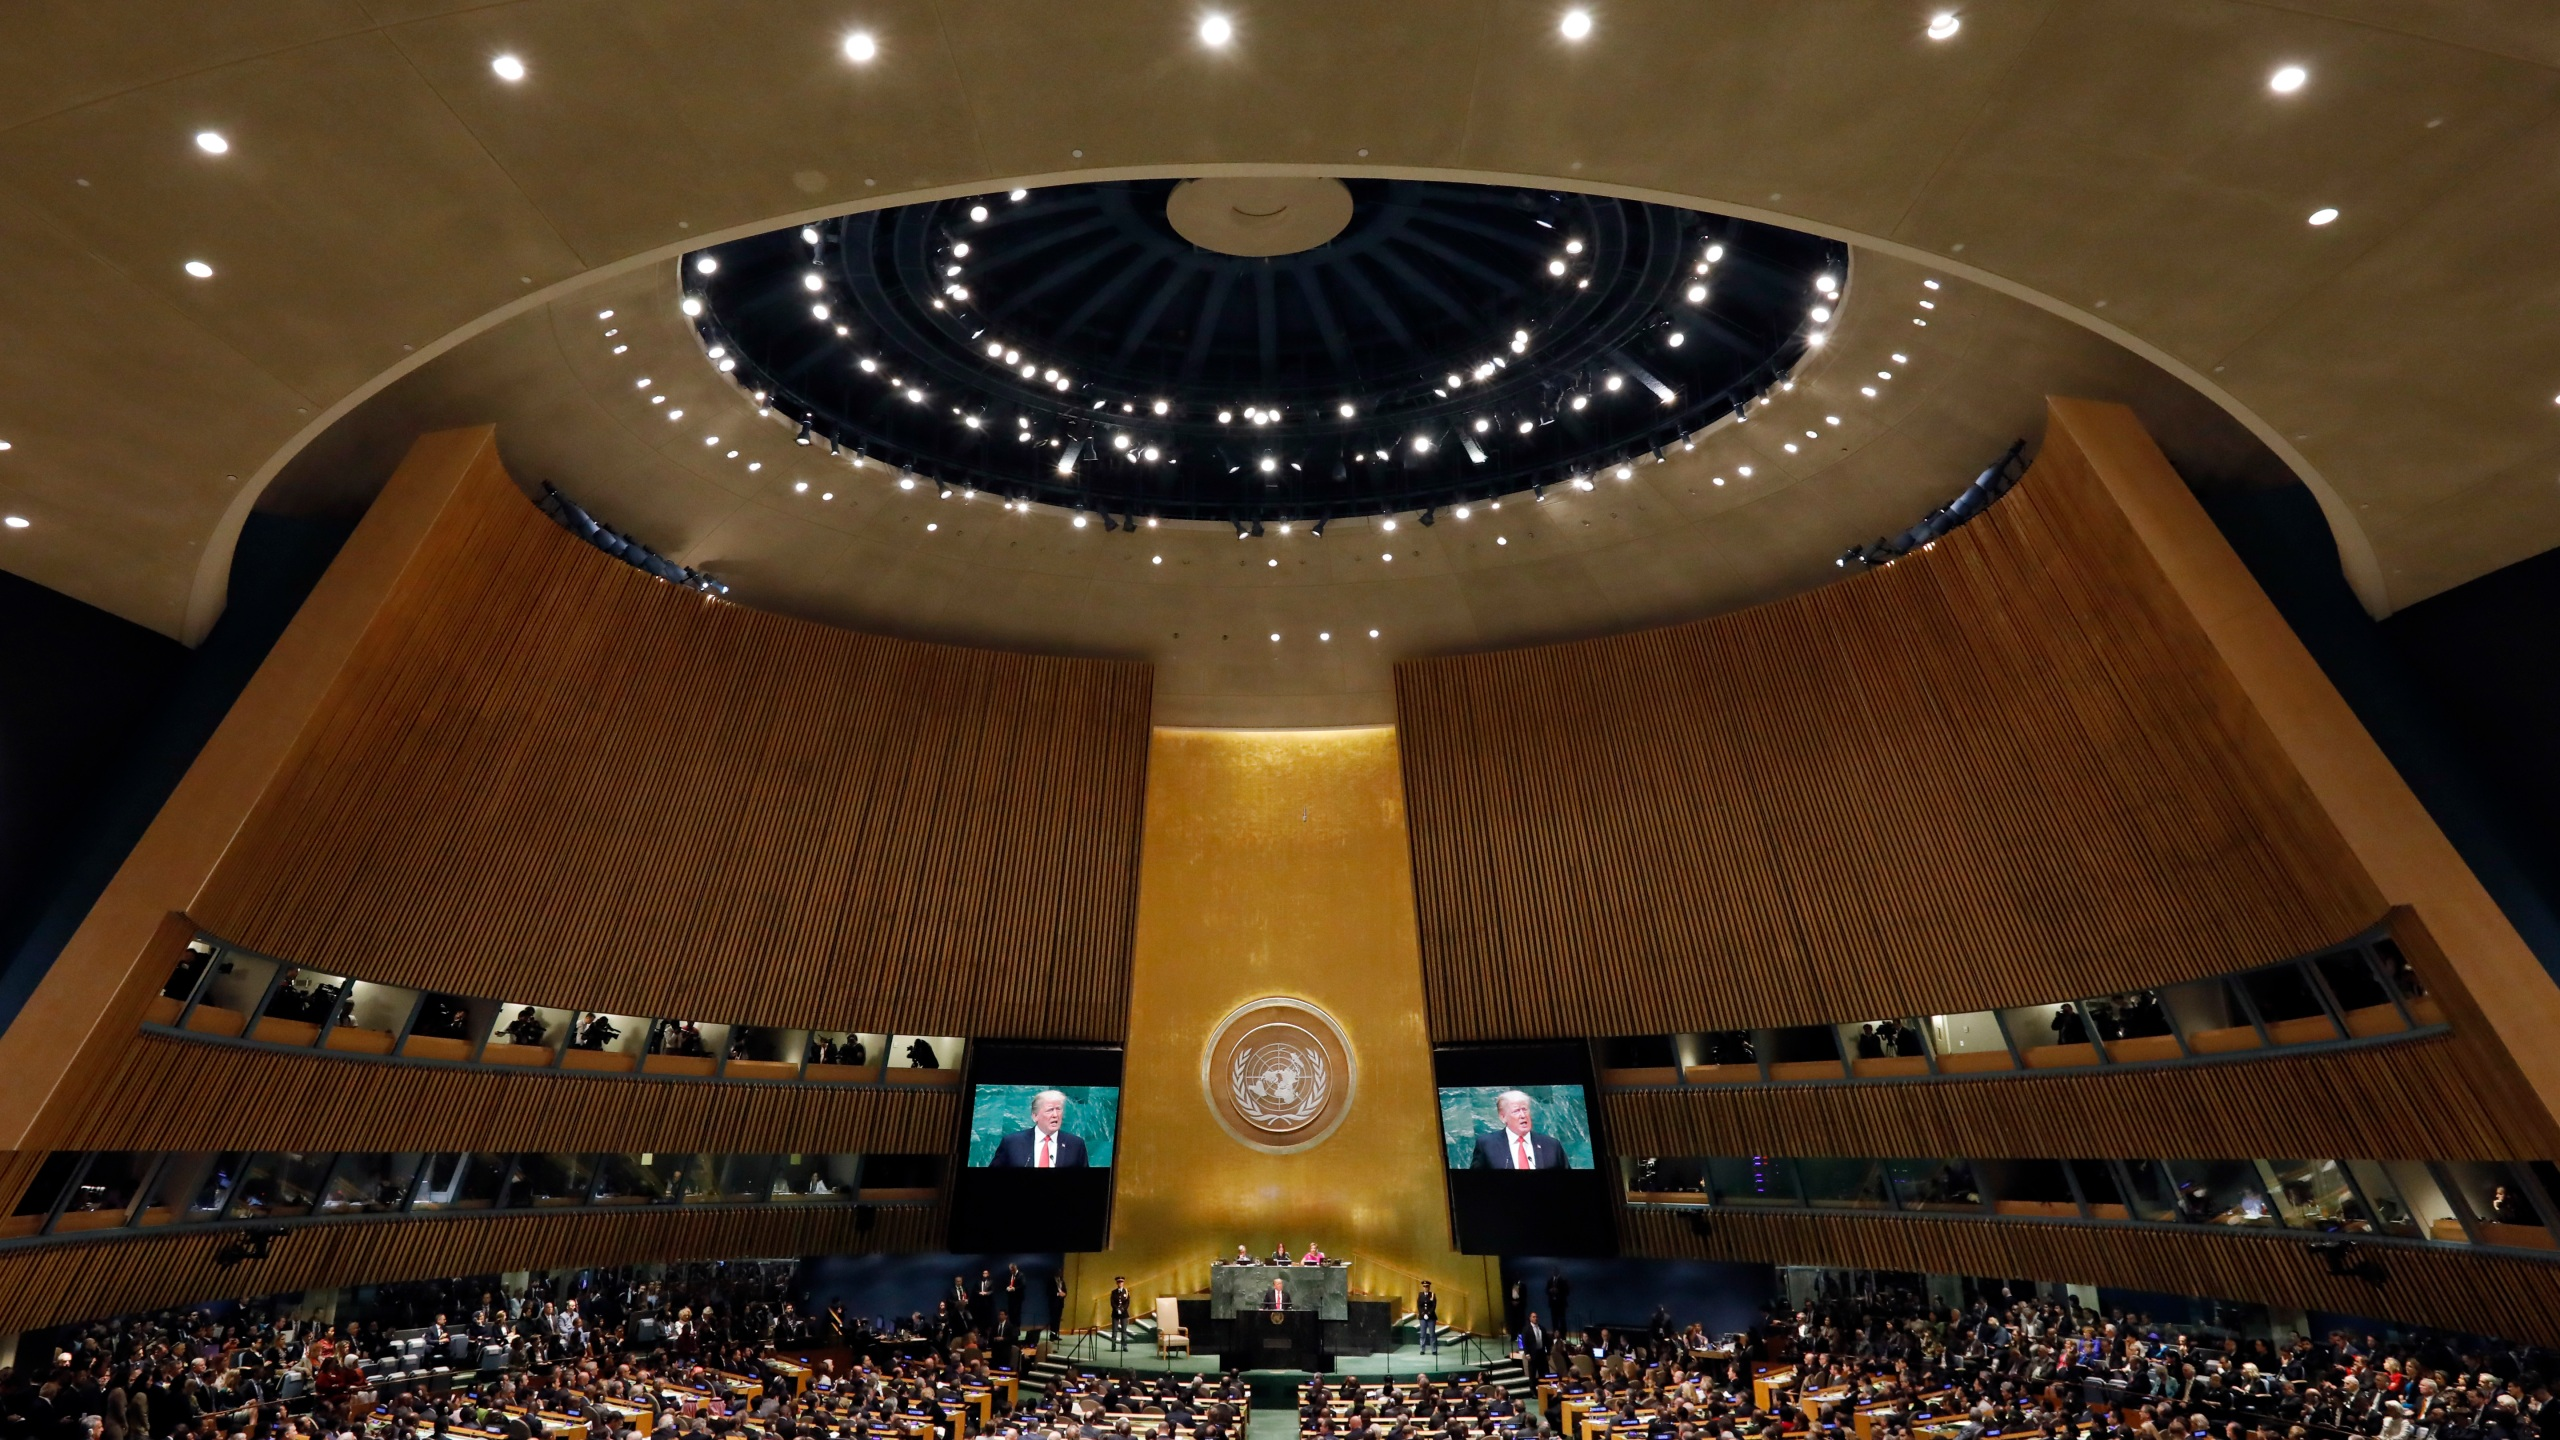 United_Nations_A_Fragmented_World_Analysis_60985-159532.jpg17139448